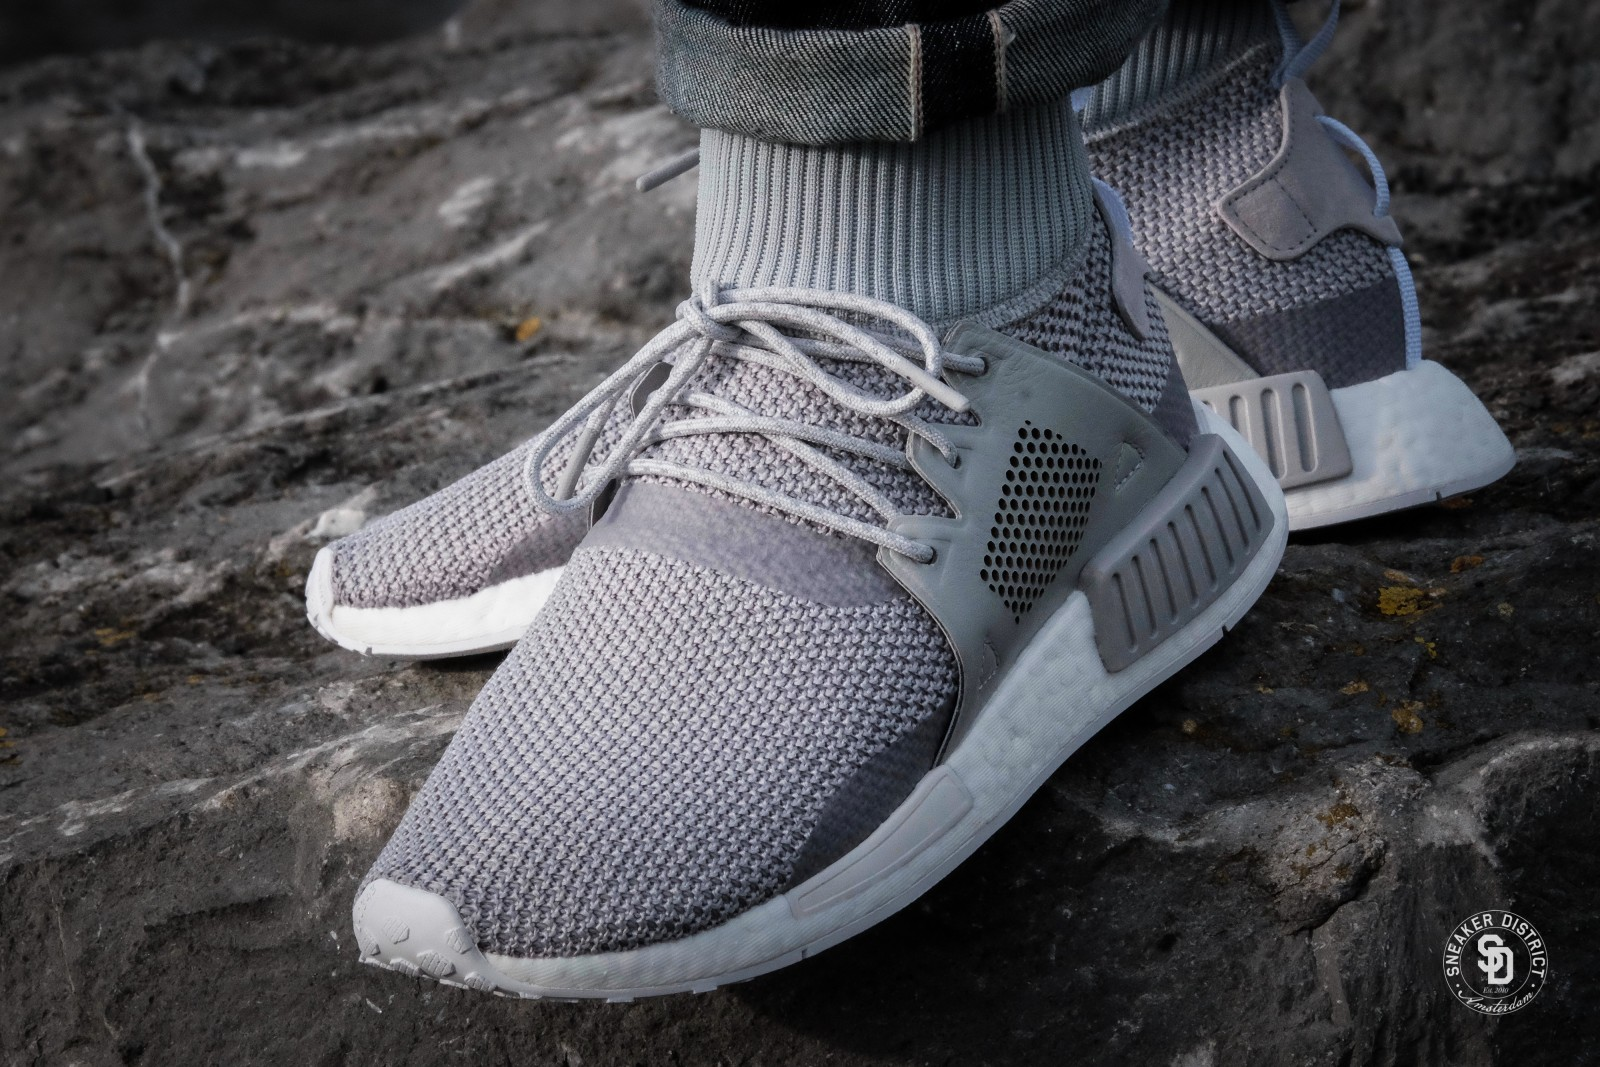 UA NMD XR1 Duck Camo Olive Hot Sale at kicksdaily.cc! Don't Miss